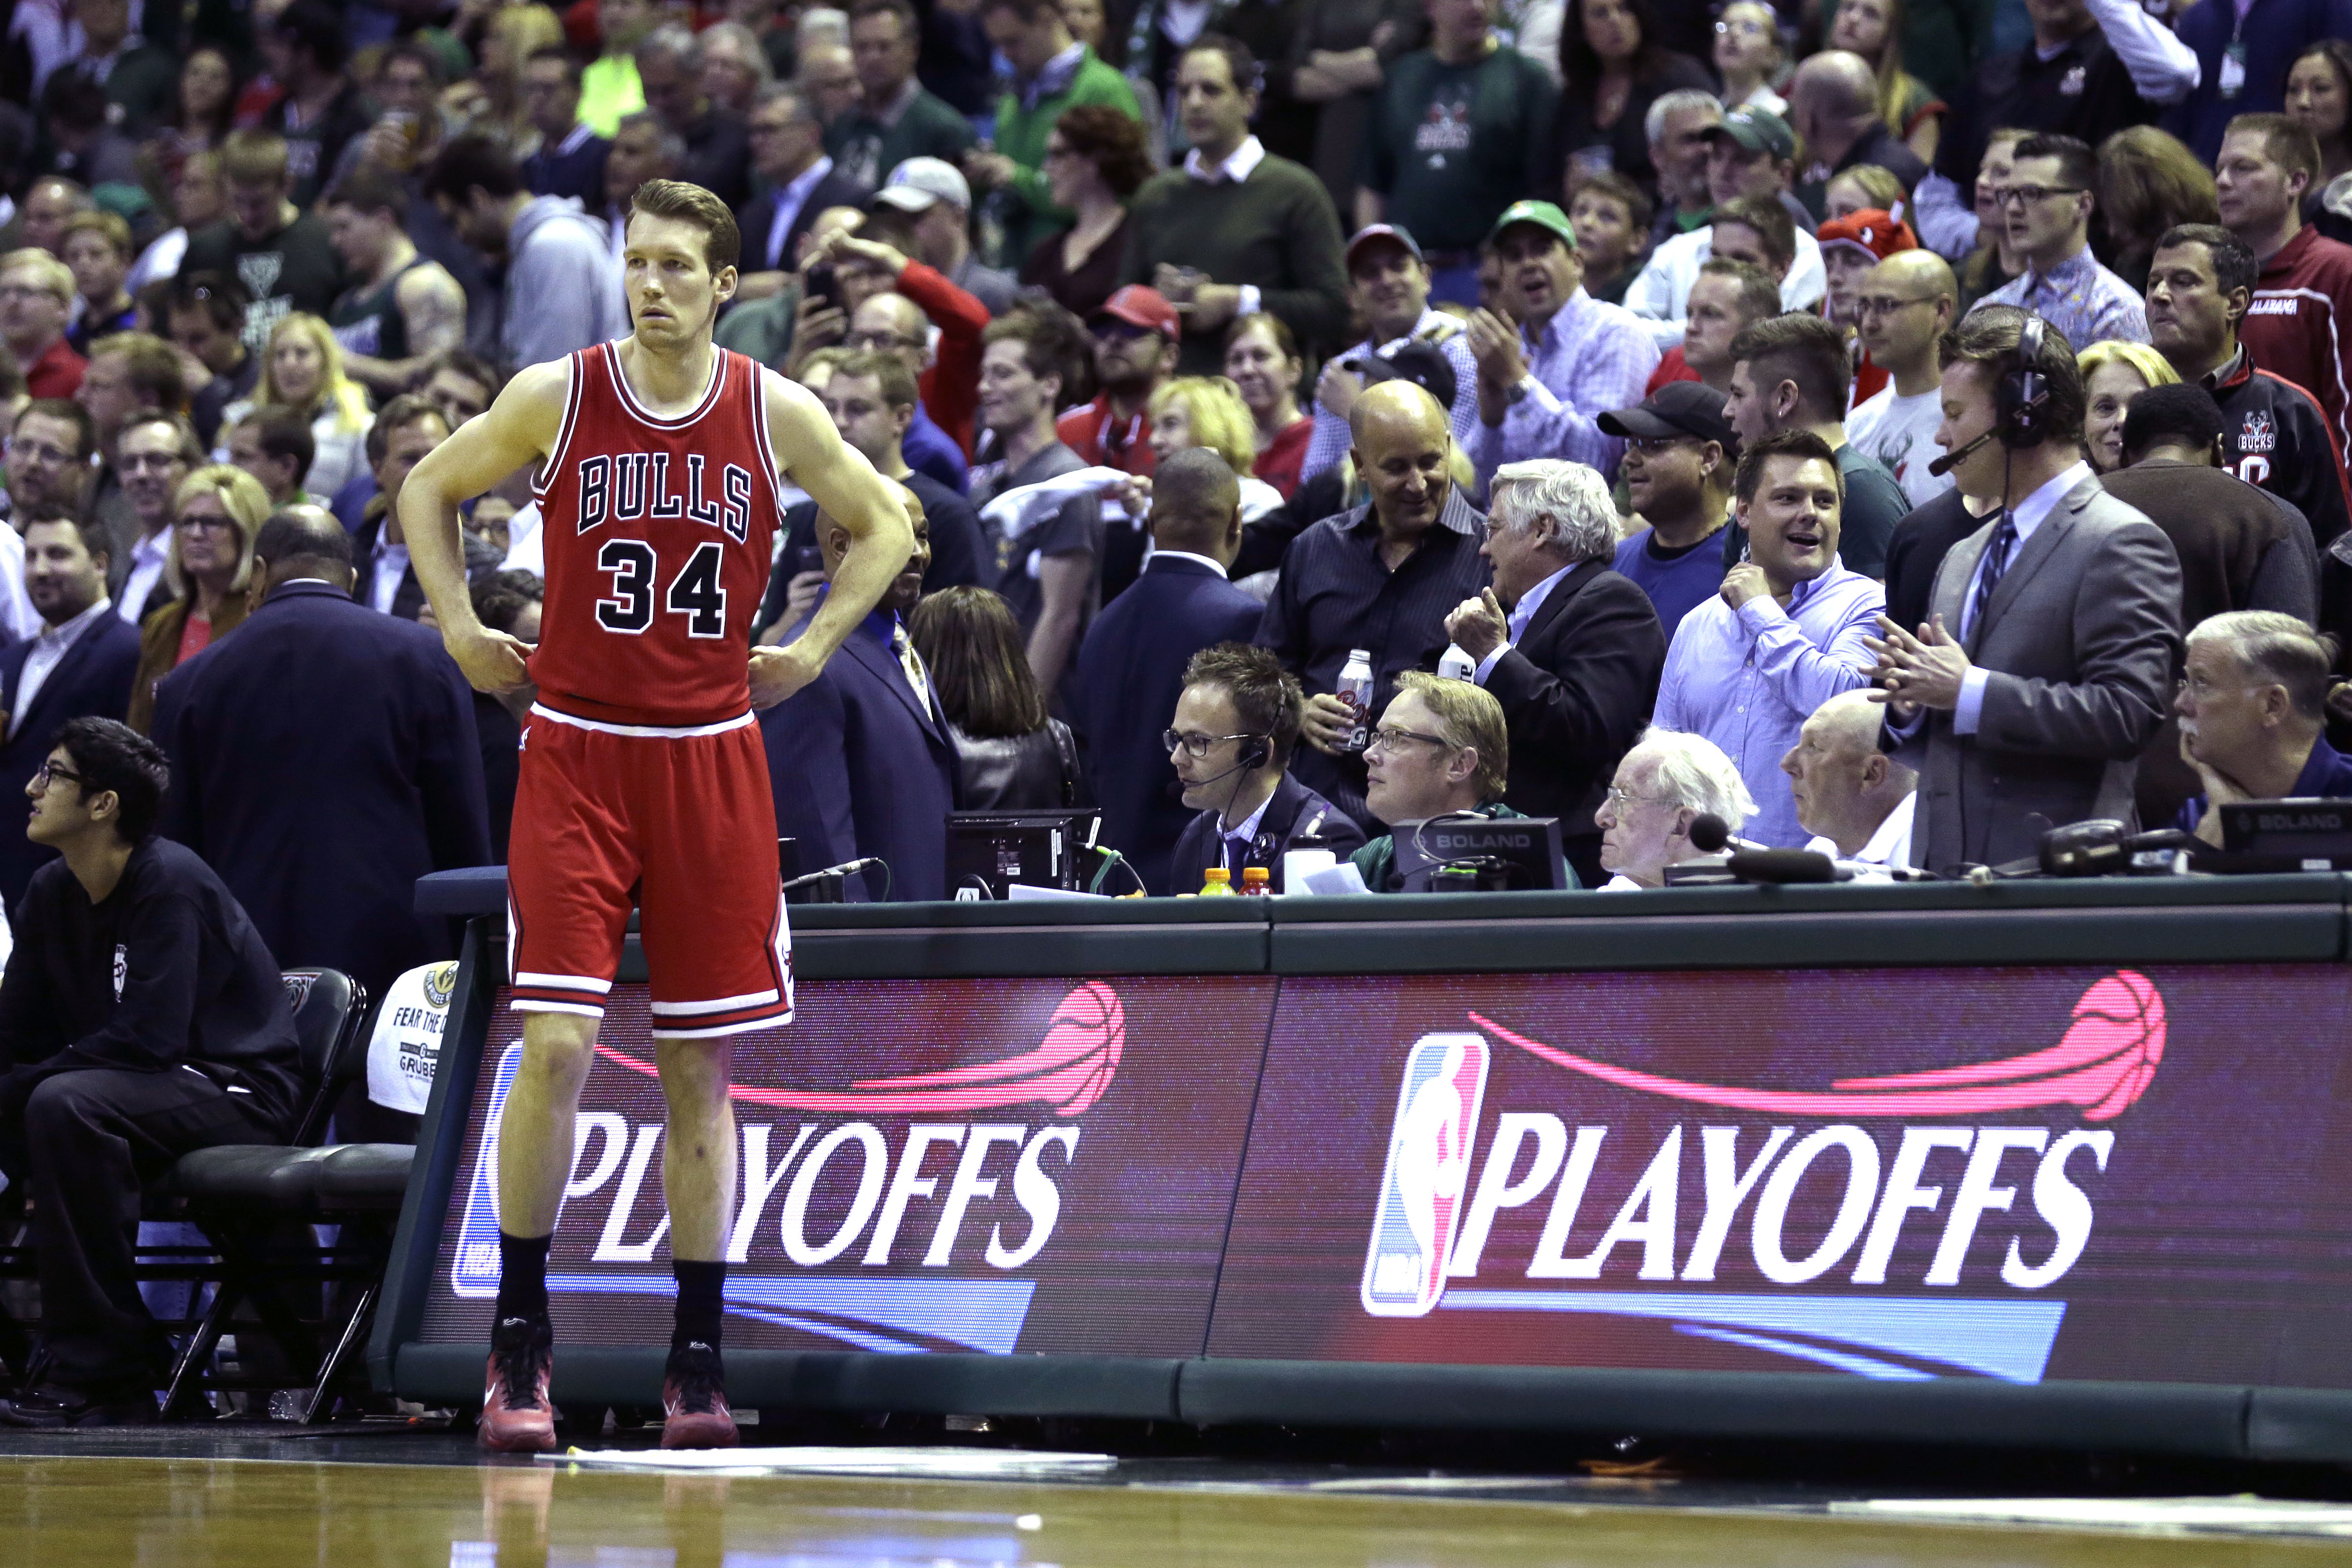 MILWAUKEE, WI - APRIL 30: Mike Dunleavy #34 of the Chicago Bulls walks onto the court before the start of the game against the Milwaukee Bucks during the first round of the 2015 NBA Playoffs at the BMO Harris Bradley Center on April 30, 2015 in Milwaukee,